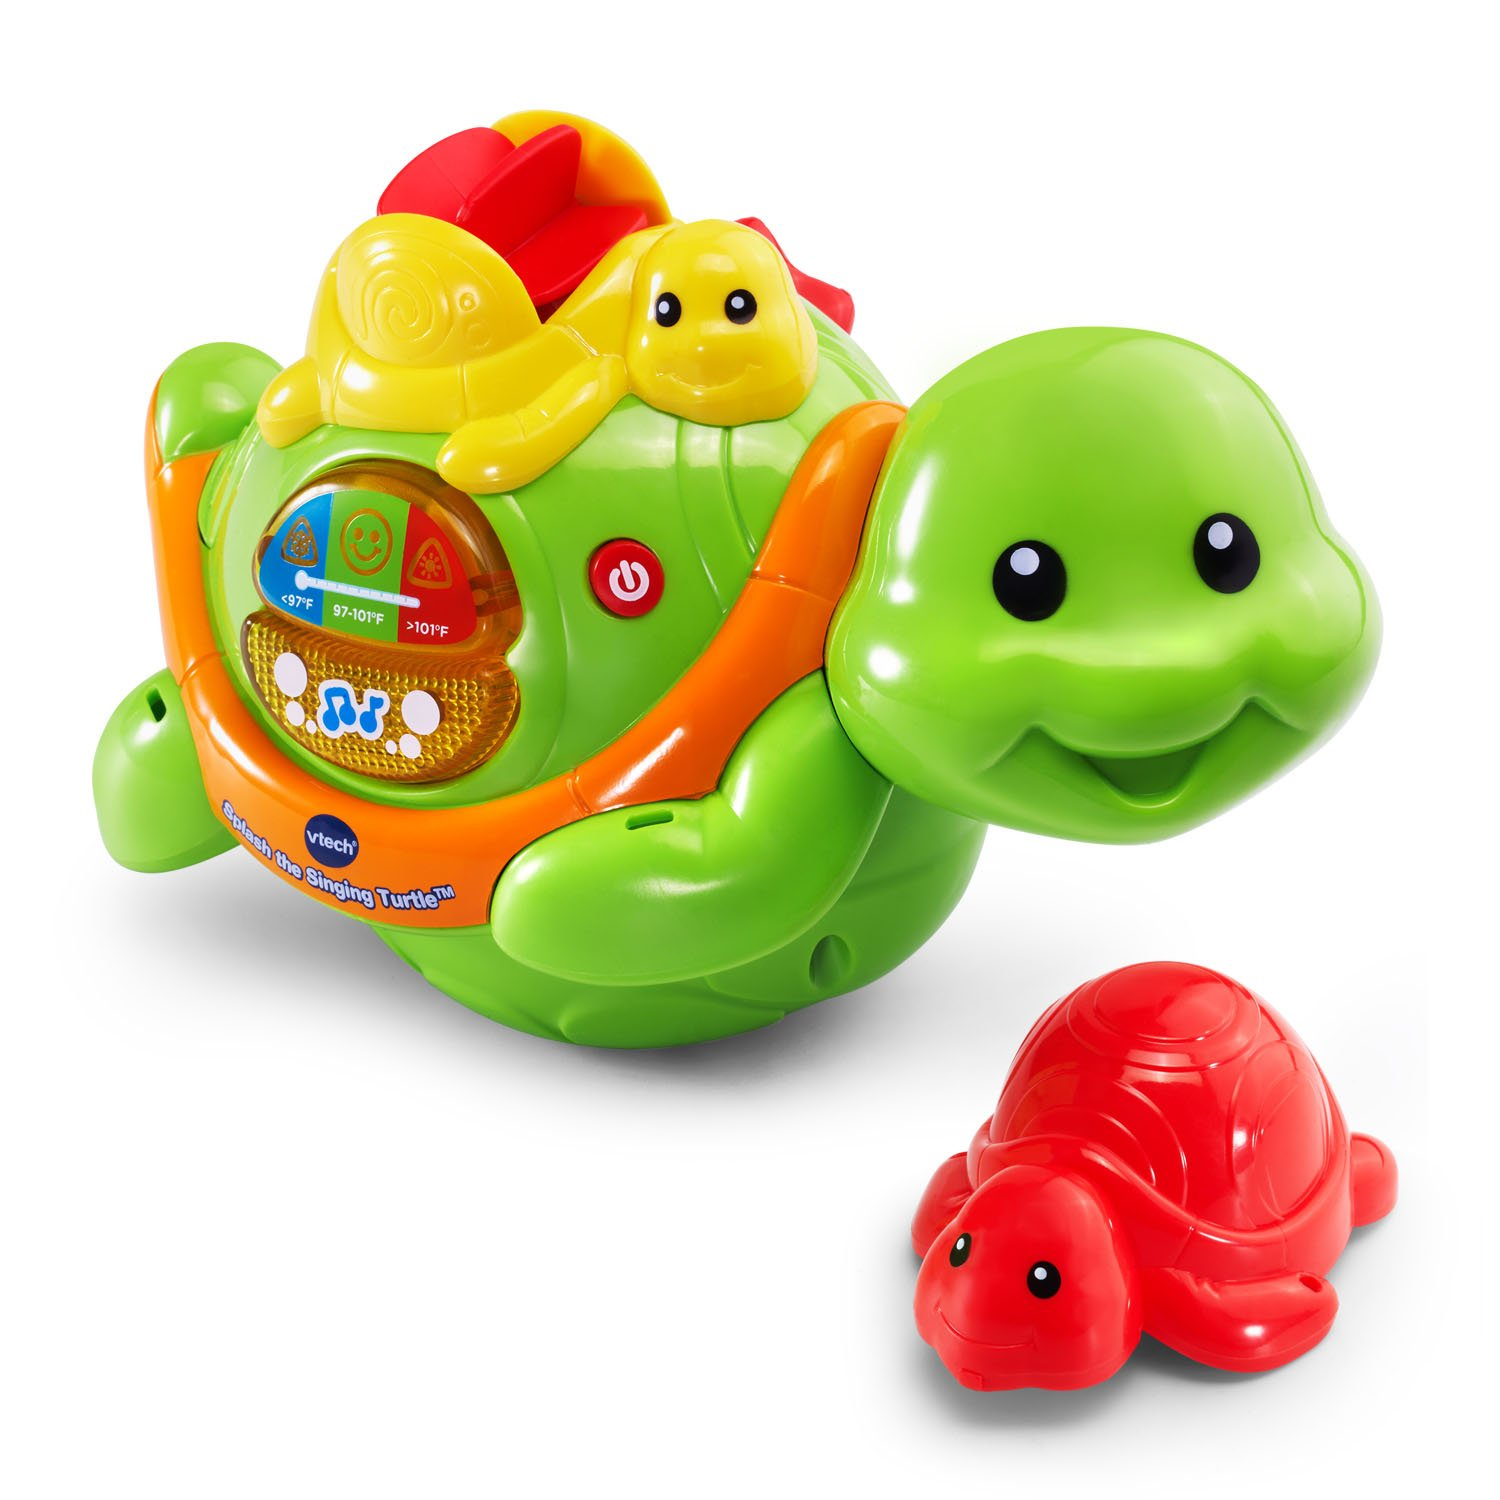 Amazon VTech Splash the Singing Turtle Toys & Games